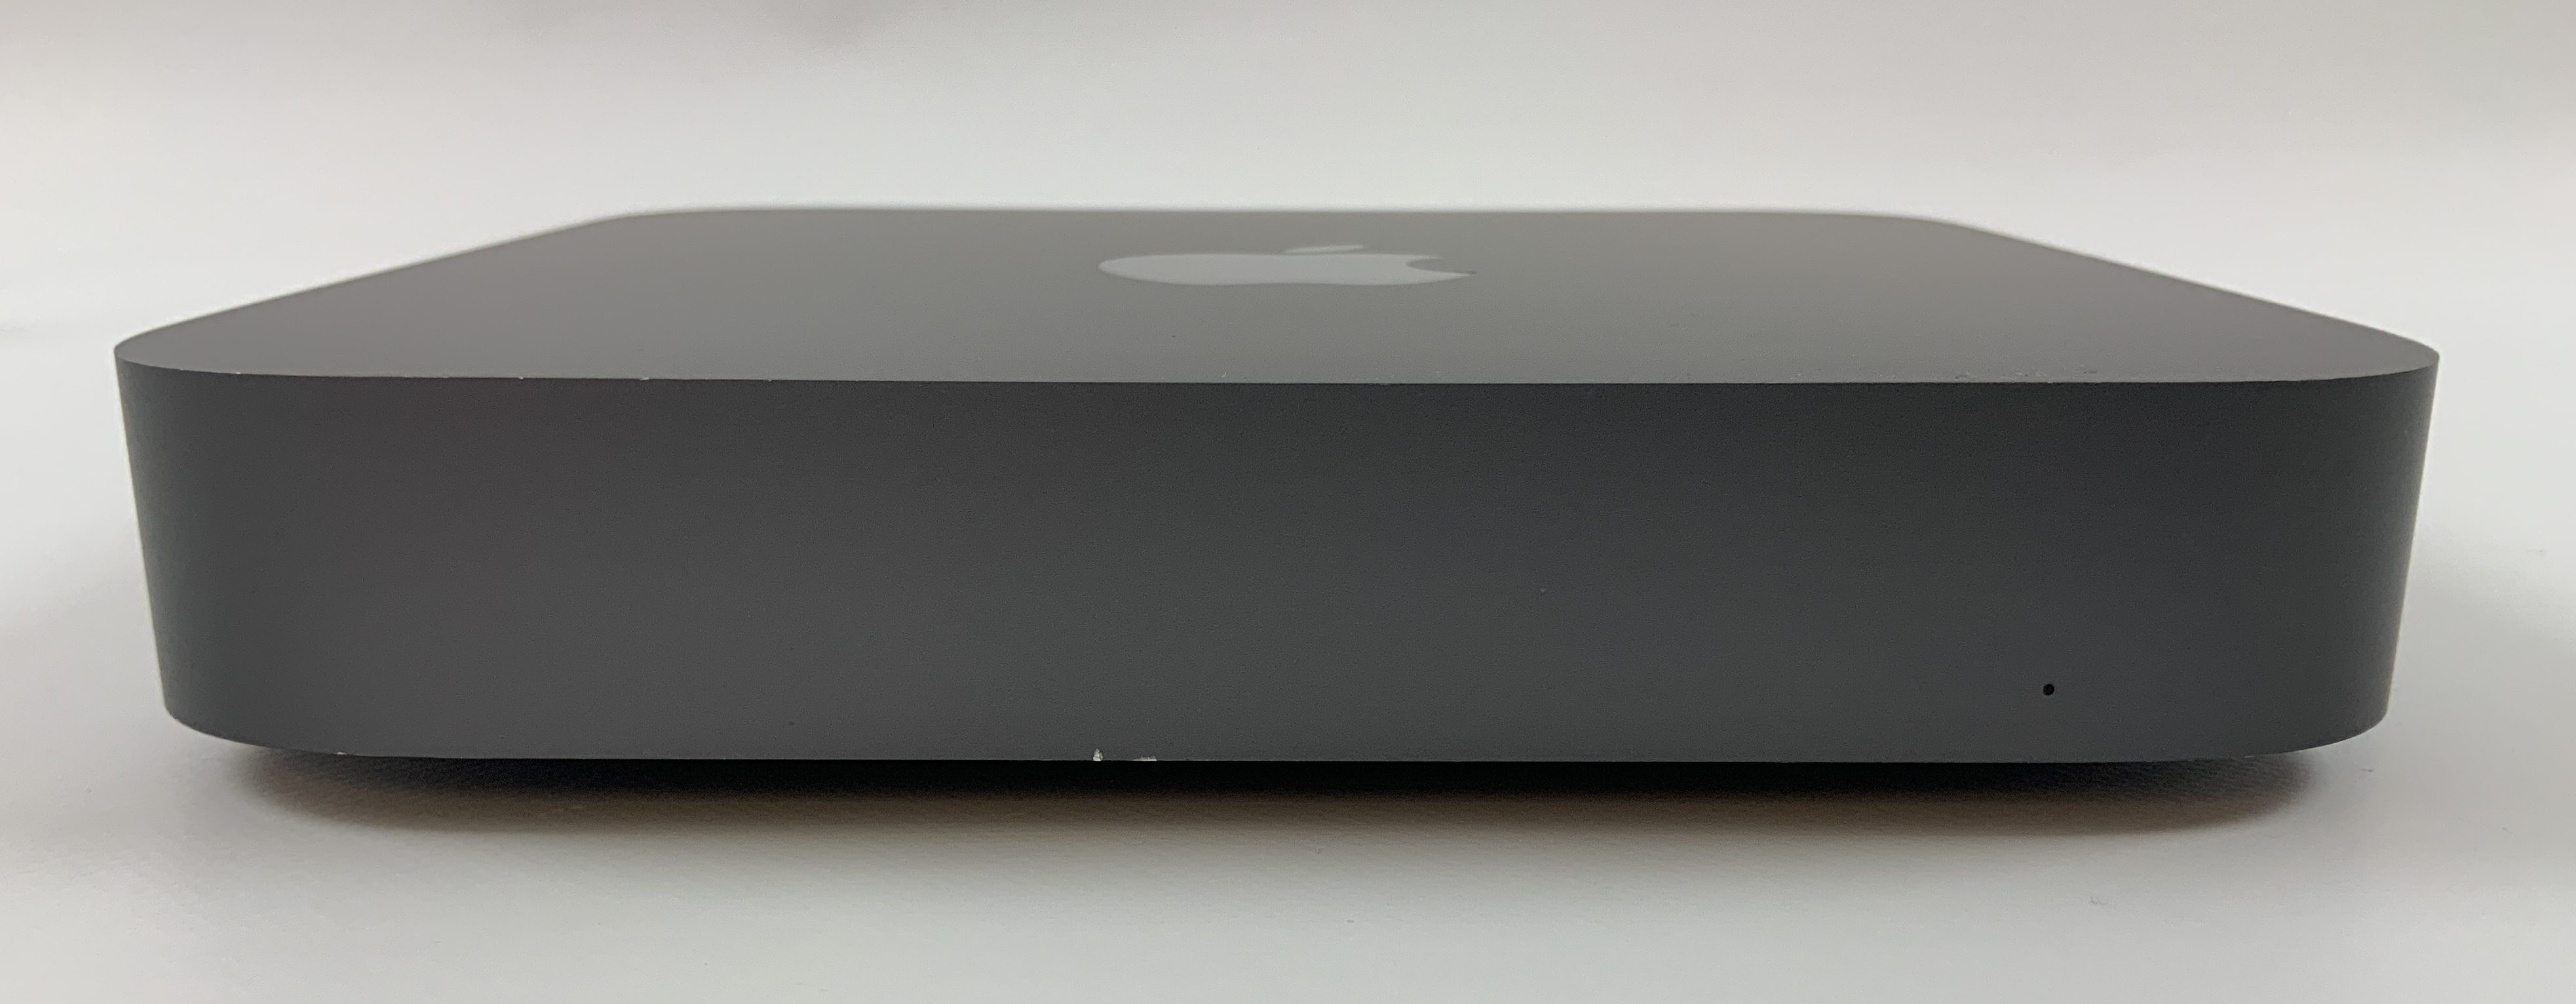 Mac Mini Late 2018 (Intel 6-Core i5 3.0 GHz 32 GB RAM 256 GB SSD), Intel 6-Core i5 3.0 GHz, 32 GB RAM, 256 GB SSD, obraz 4